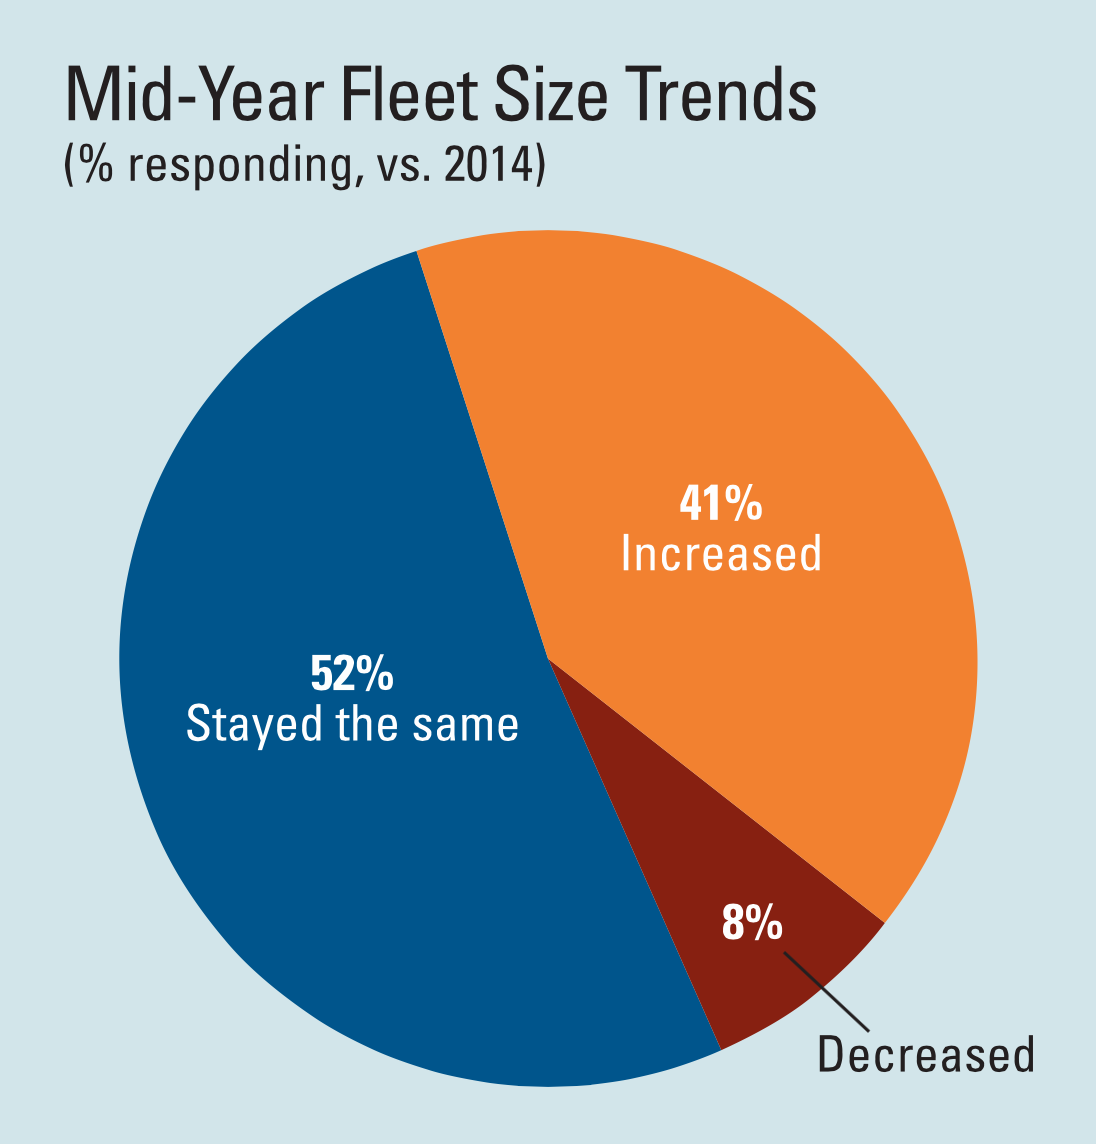 Construction Equipment Fleets Show Growth in 2015